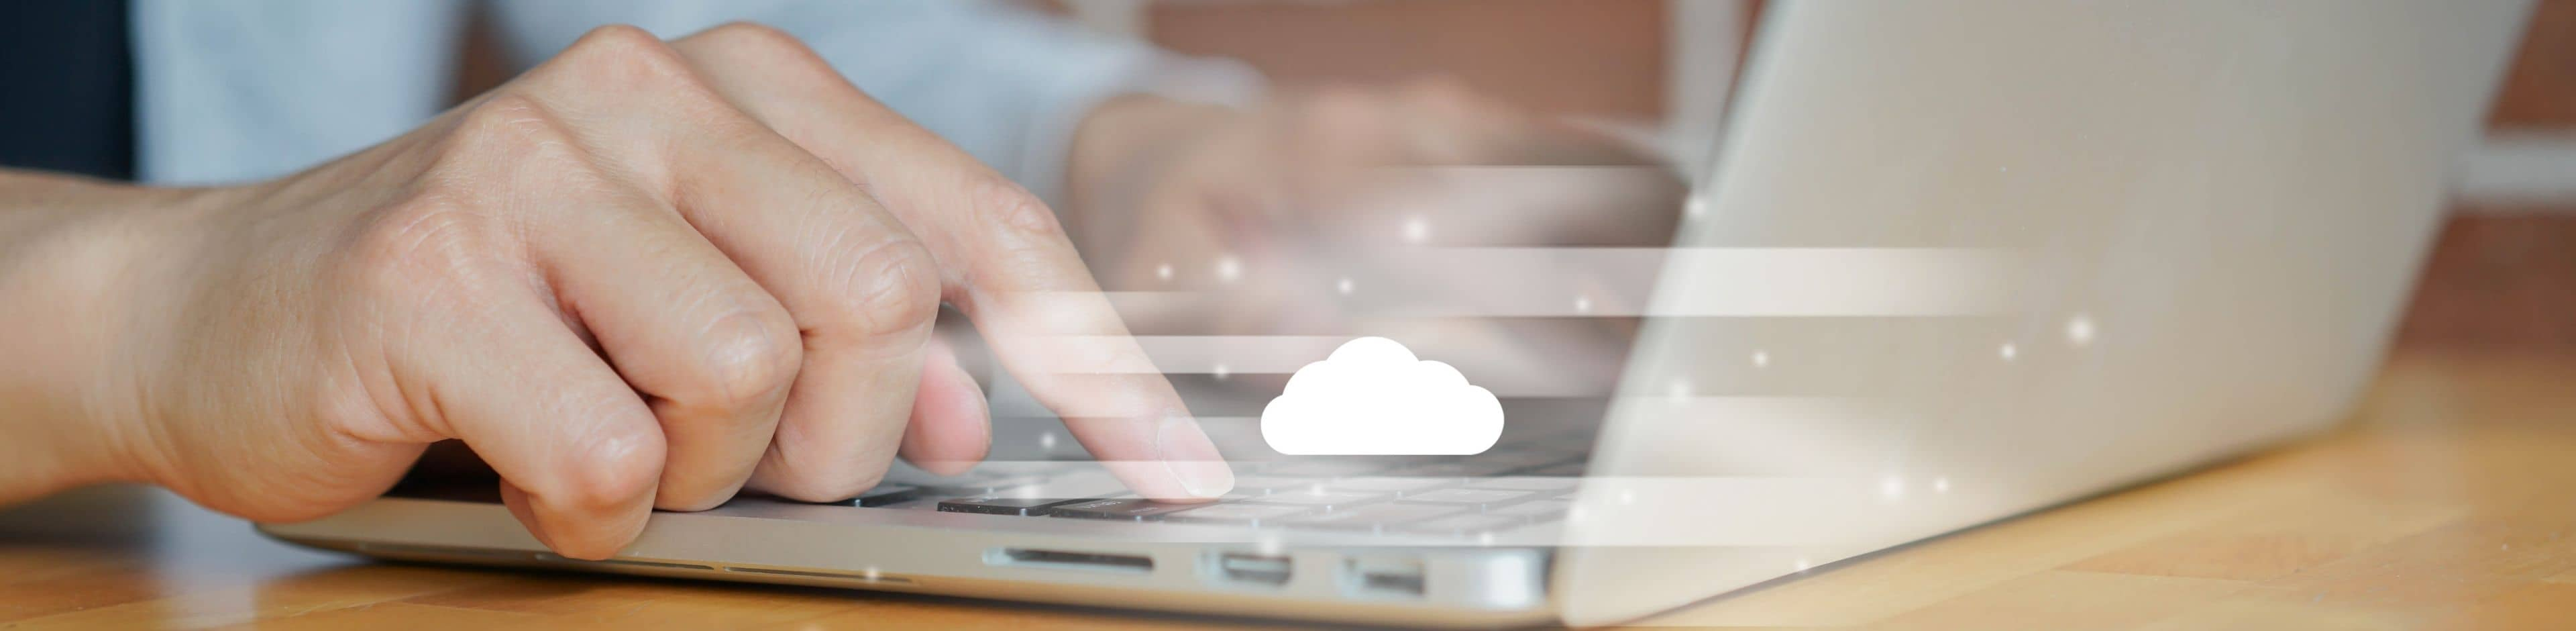 Benefits of adopting a cloud-based practice management for your law firm